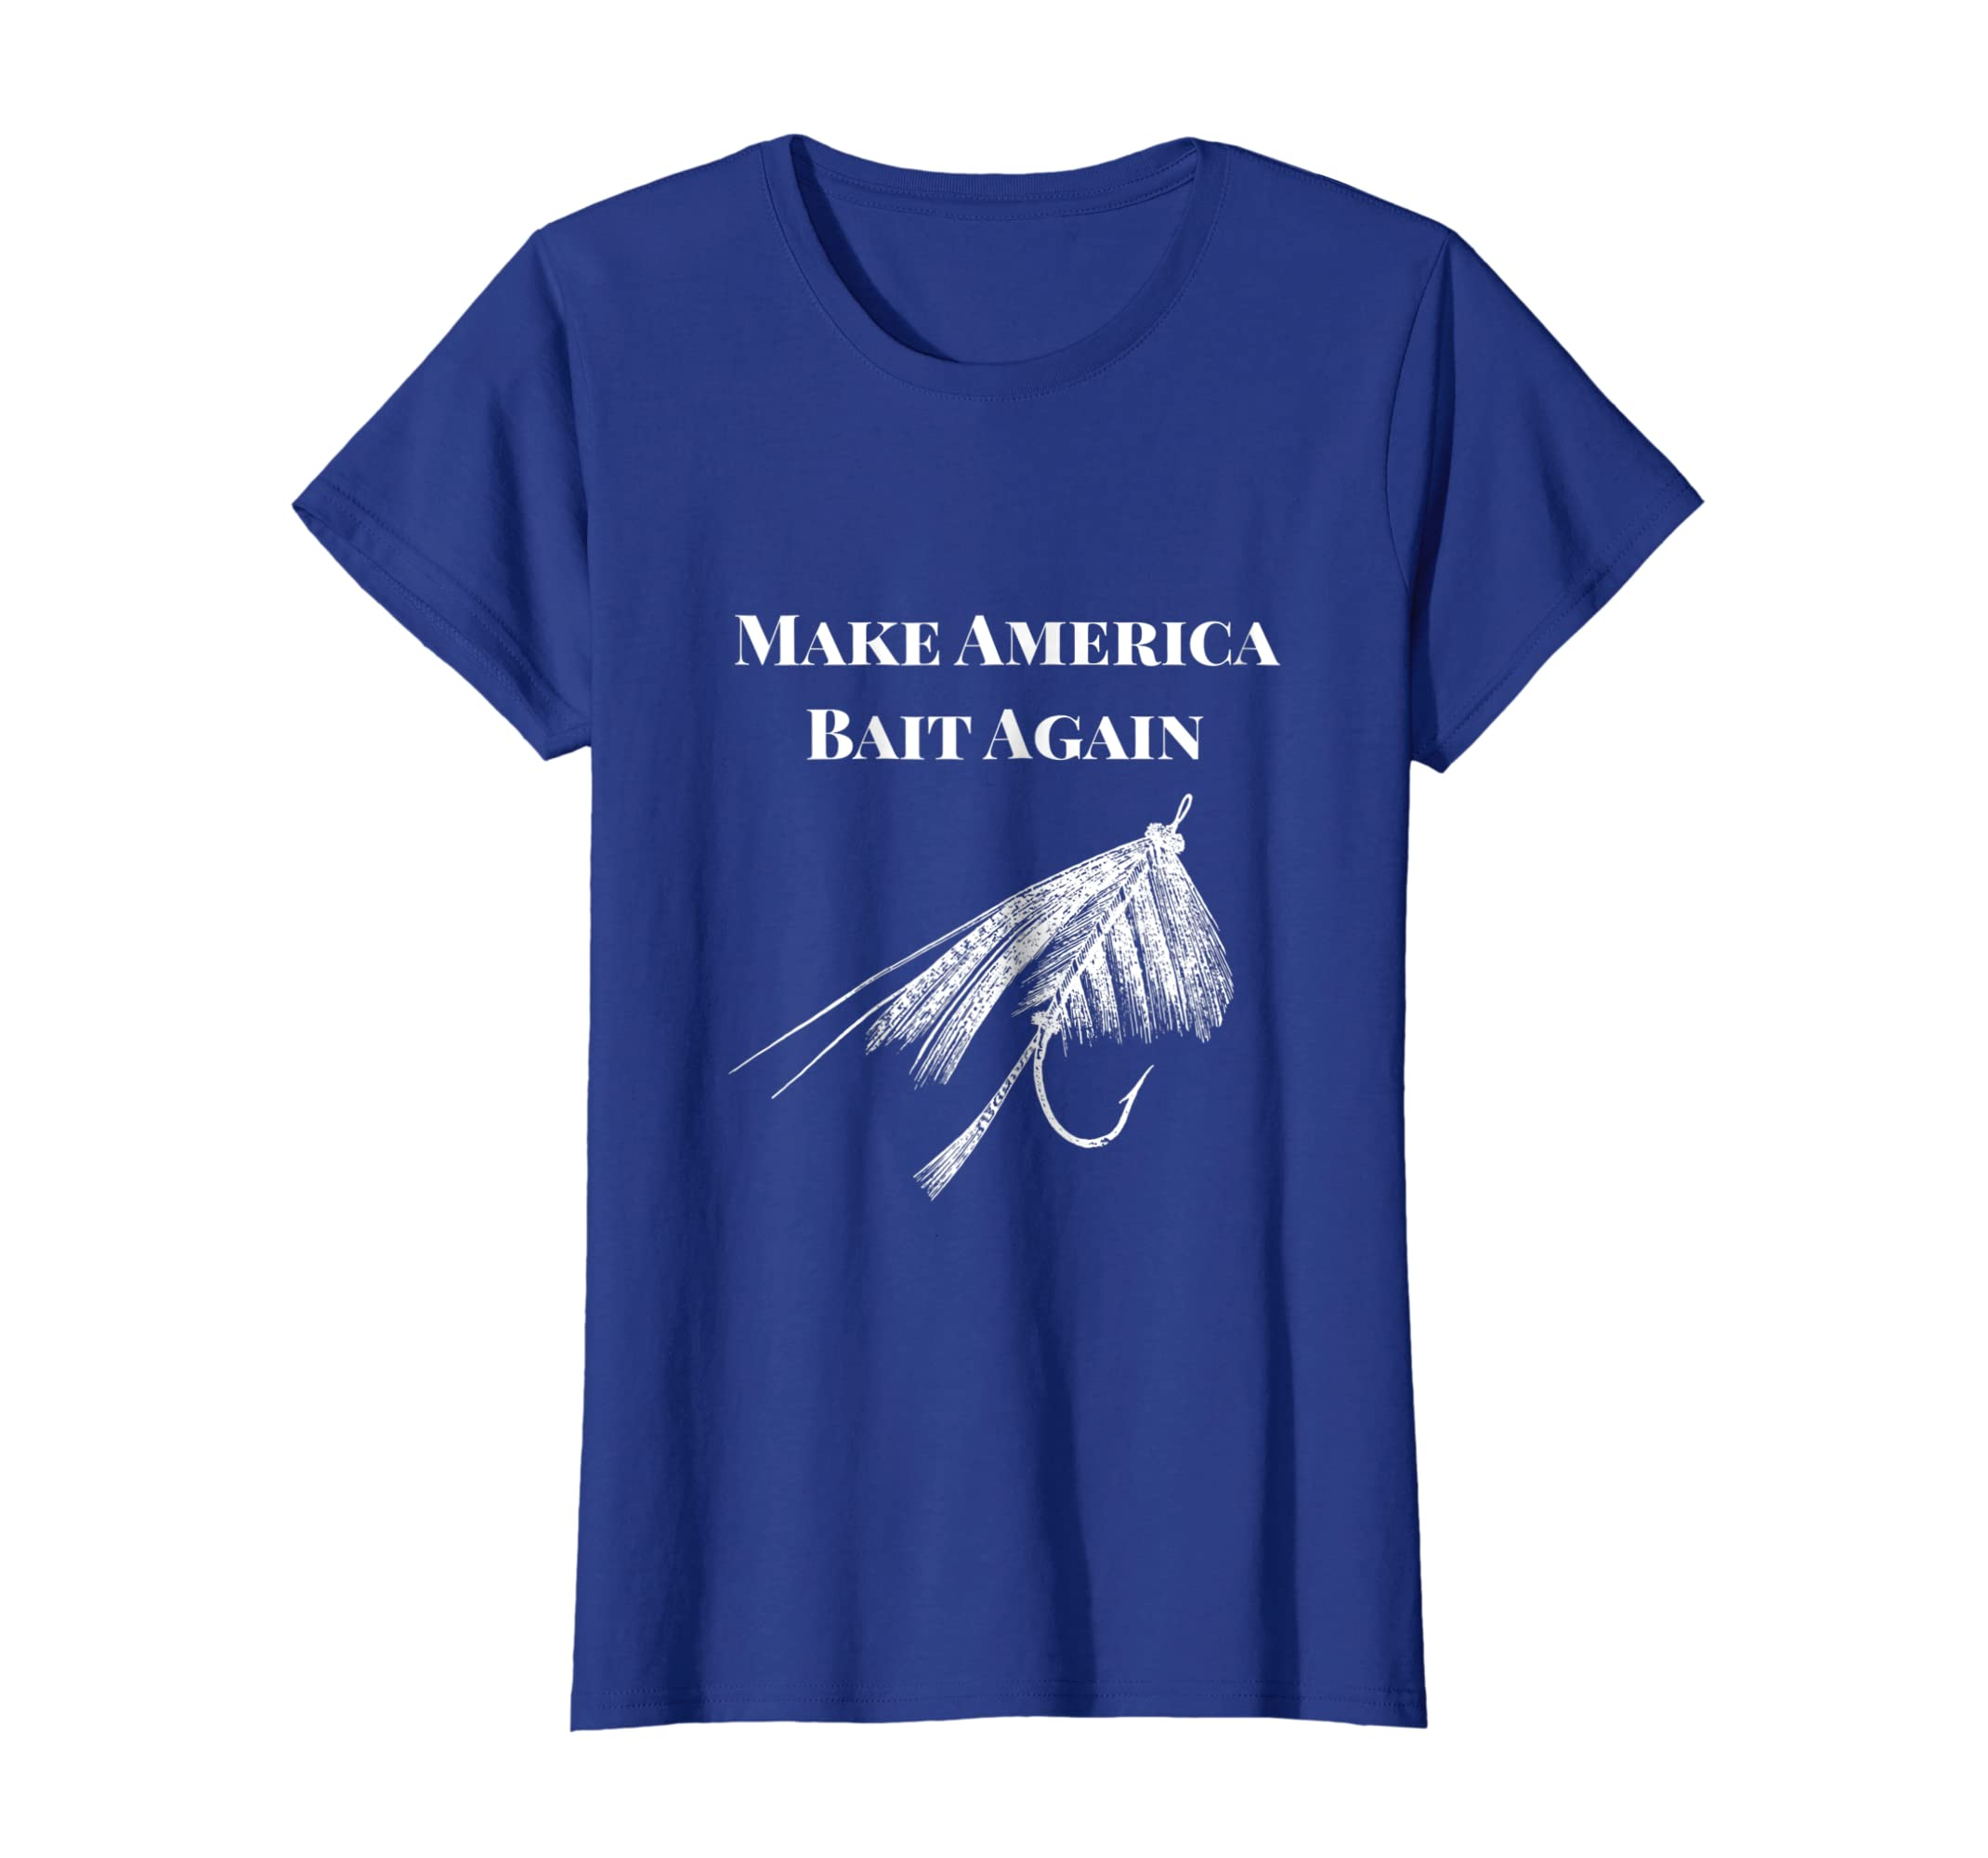 16931ad87d Amazon.com: Make America Bait Again - Funny Fly Fishing Shirt: Clothing